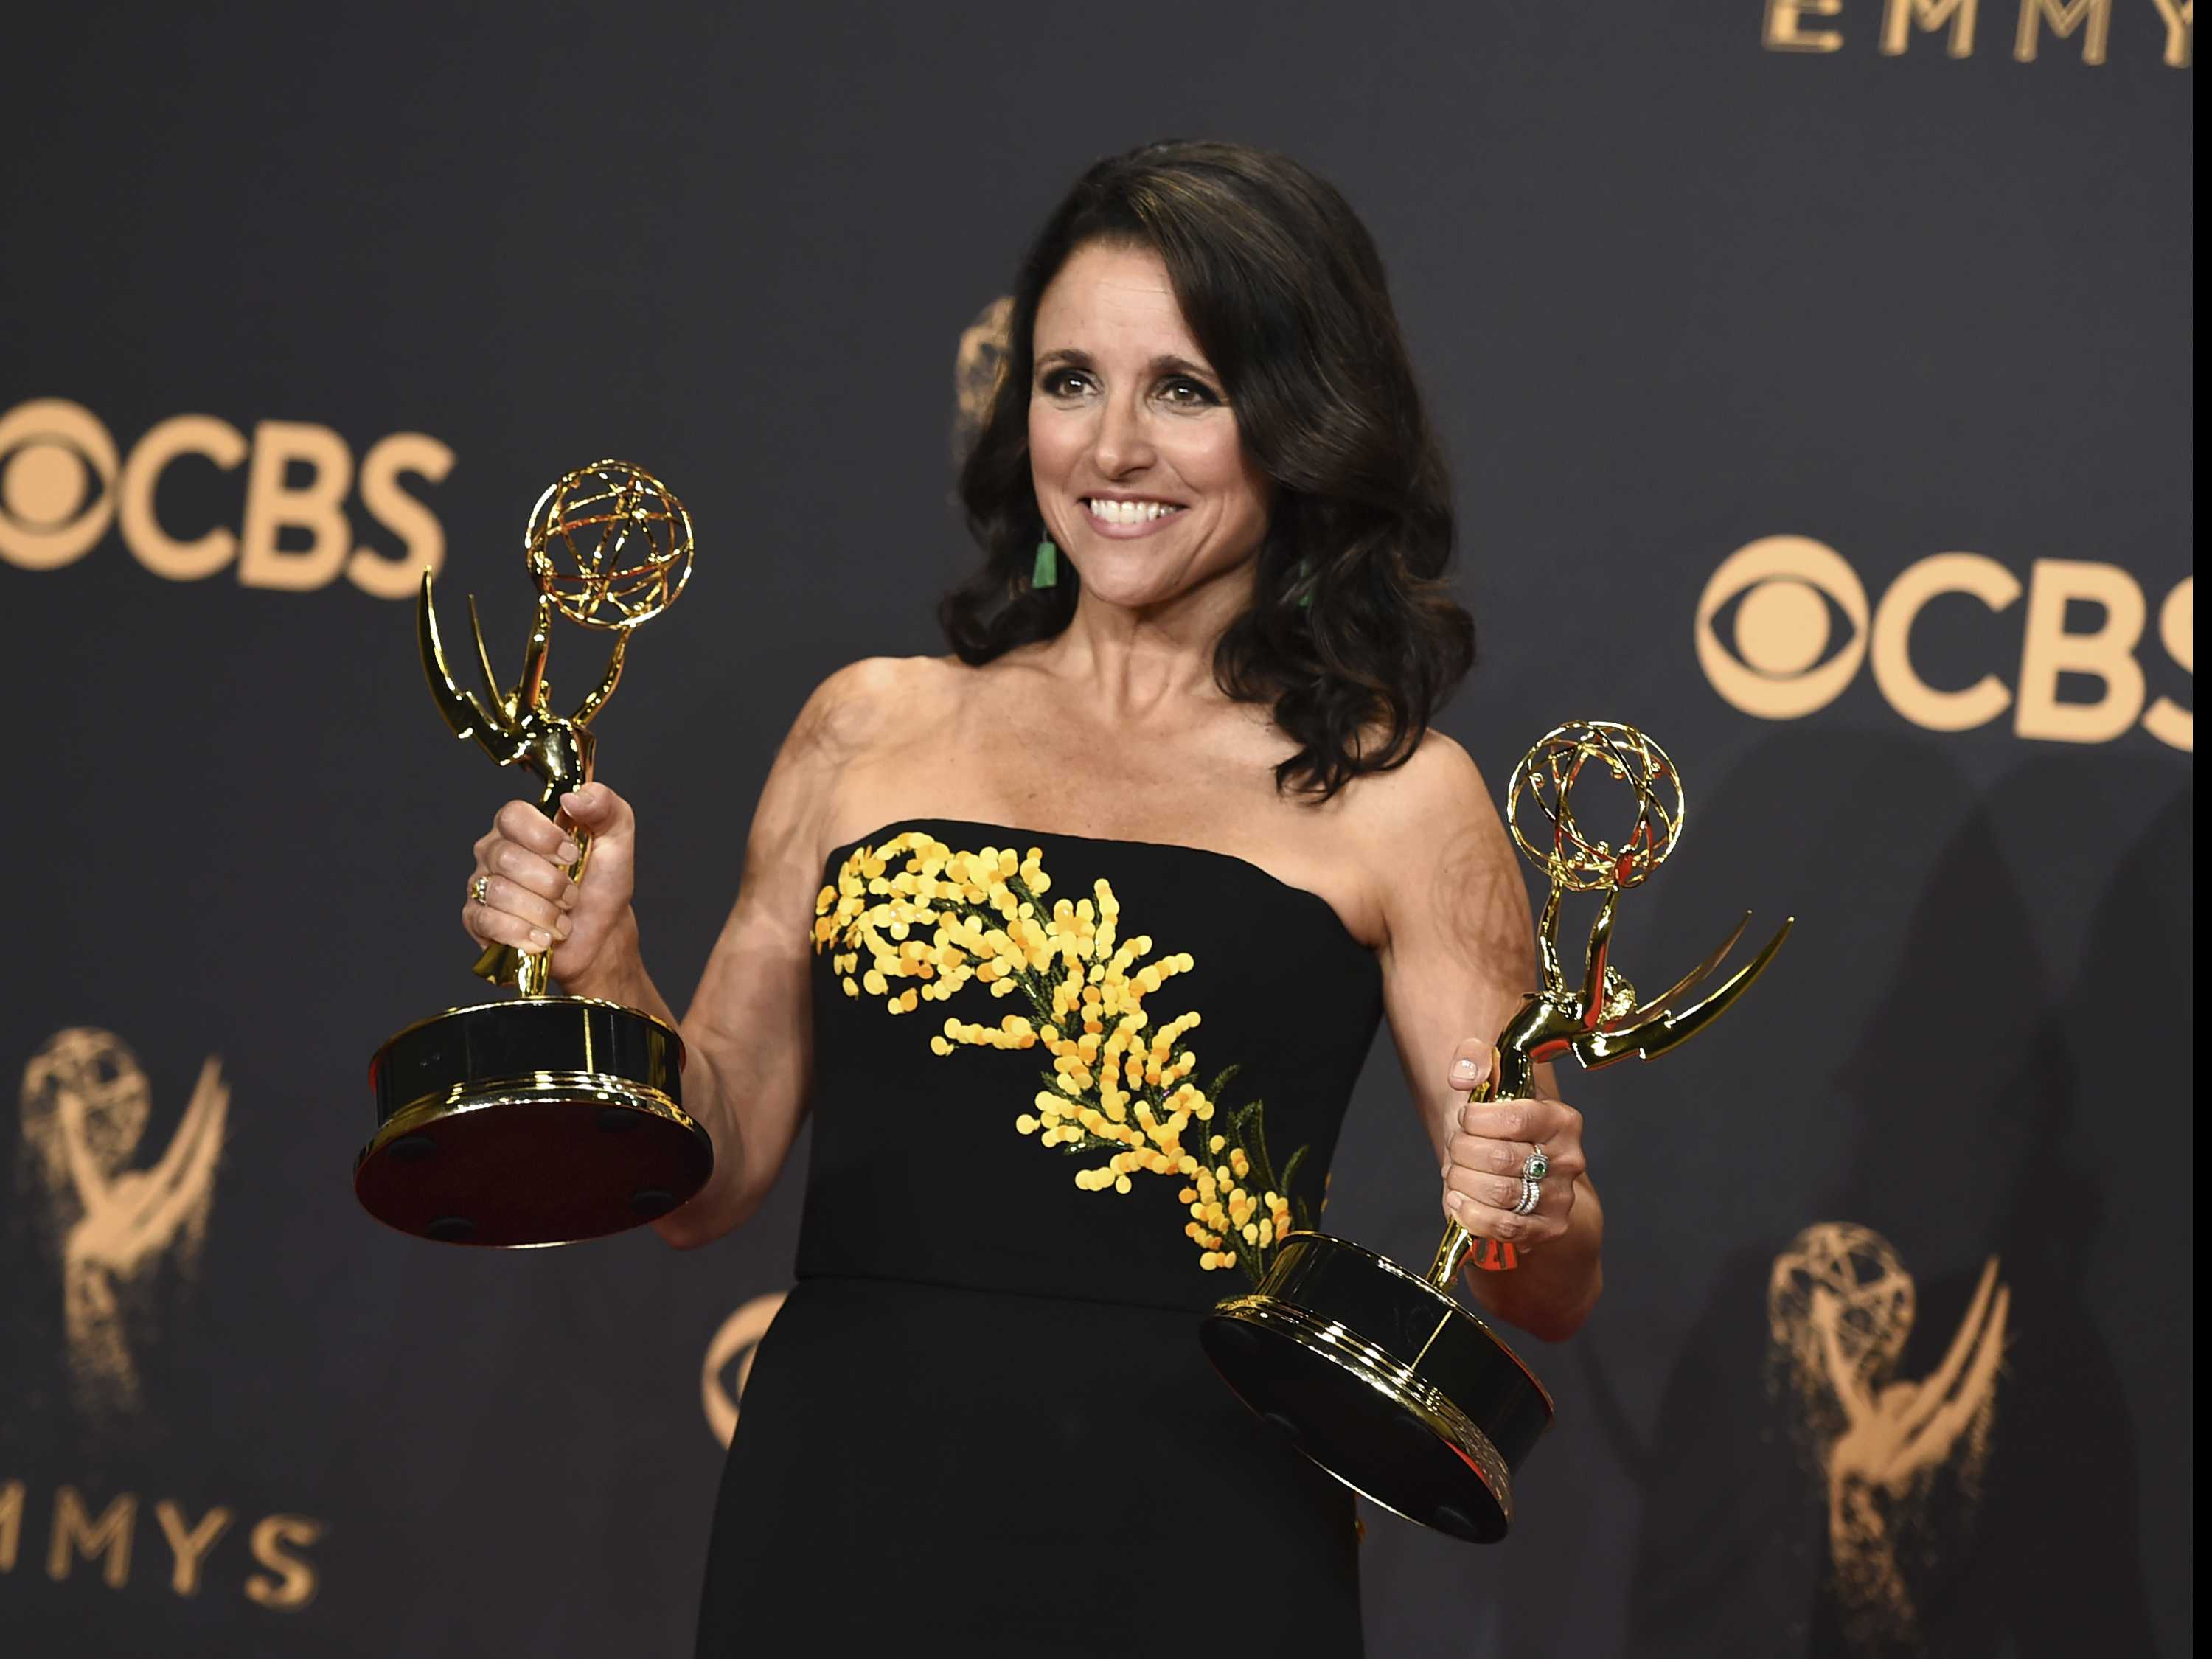 Watch: Julia Louis-Dreyfus Marks Chemo End with 'Beat It' Video